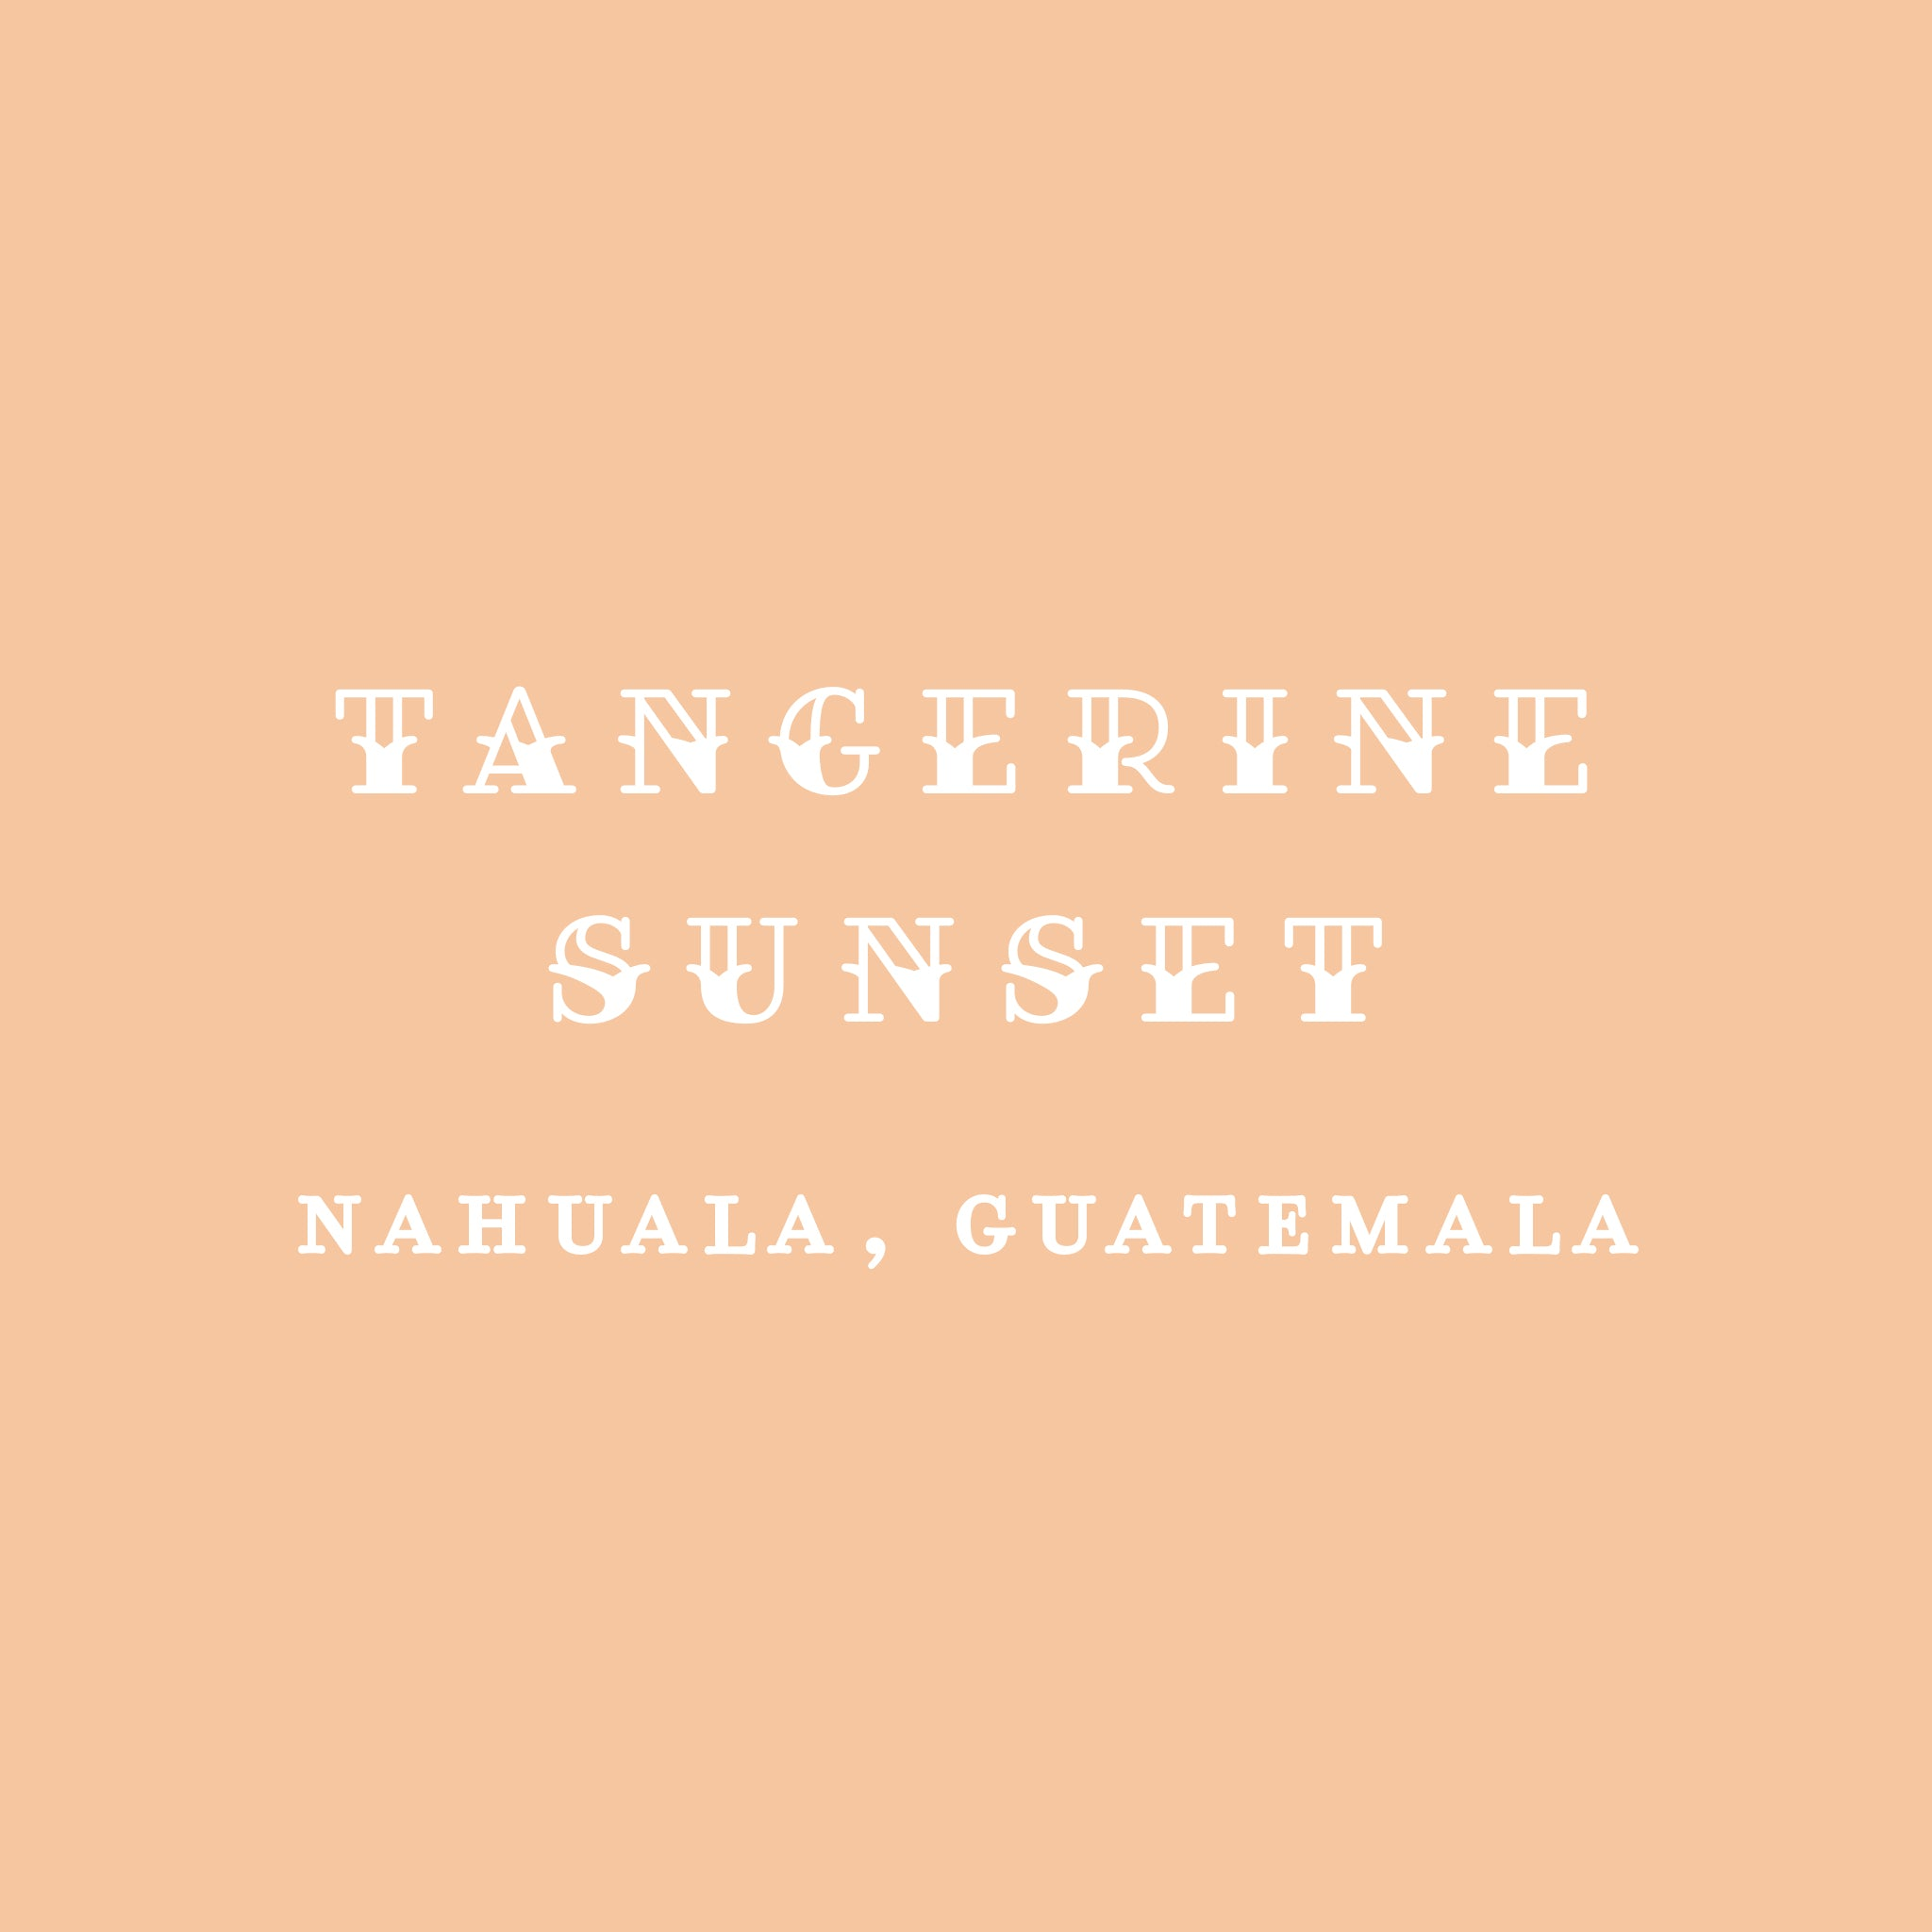 Tangerine Sunset